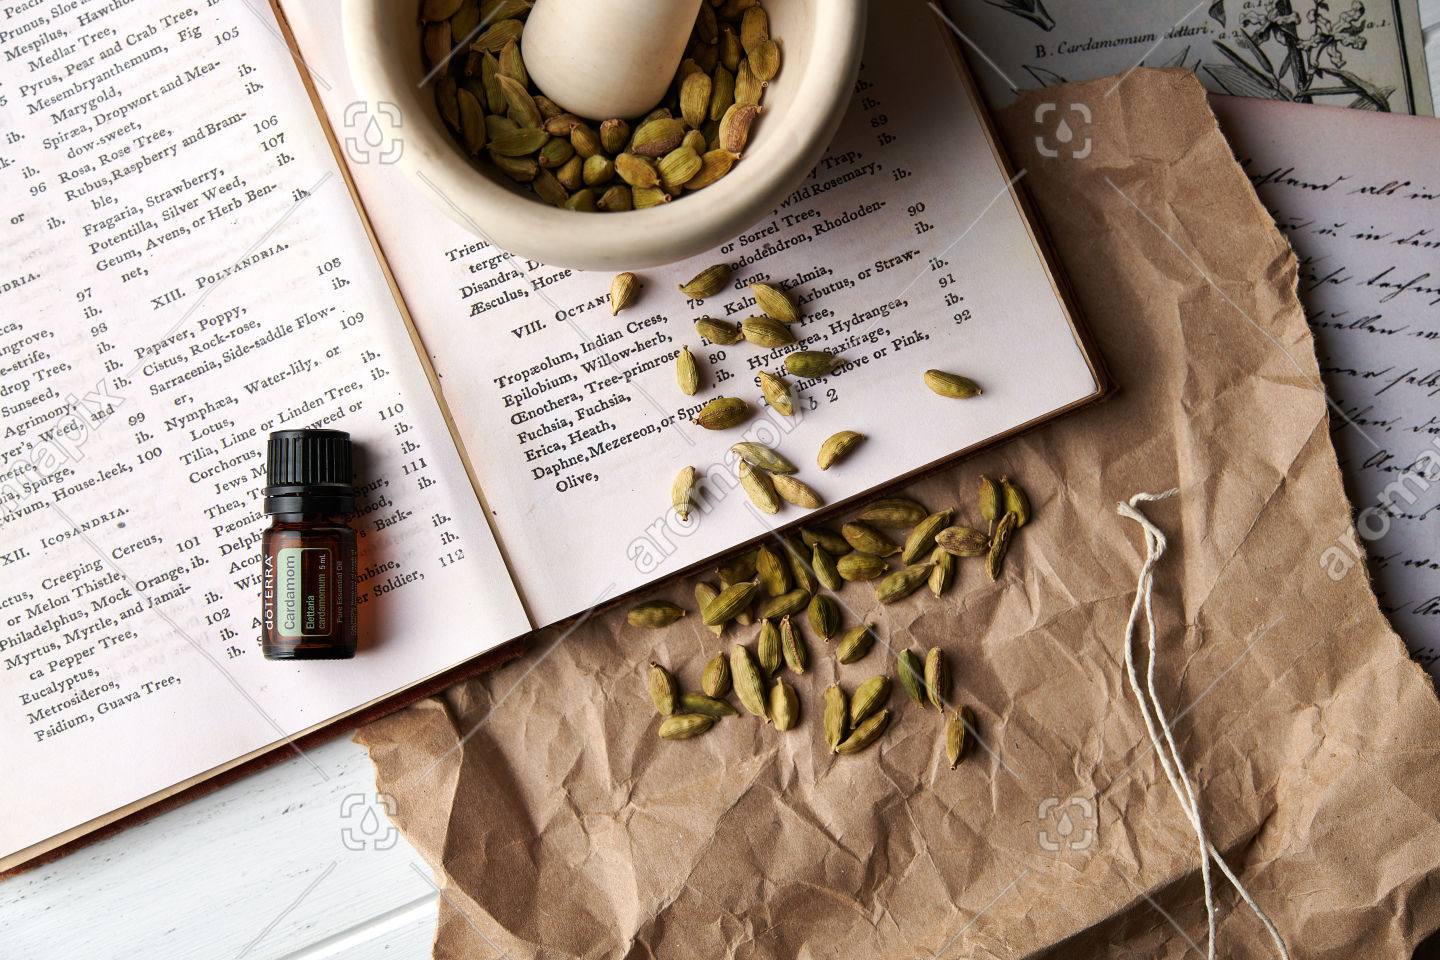 doTERRA Cardamon with dried cardamon seed pods in a mortar and pestle